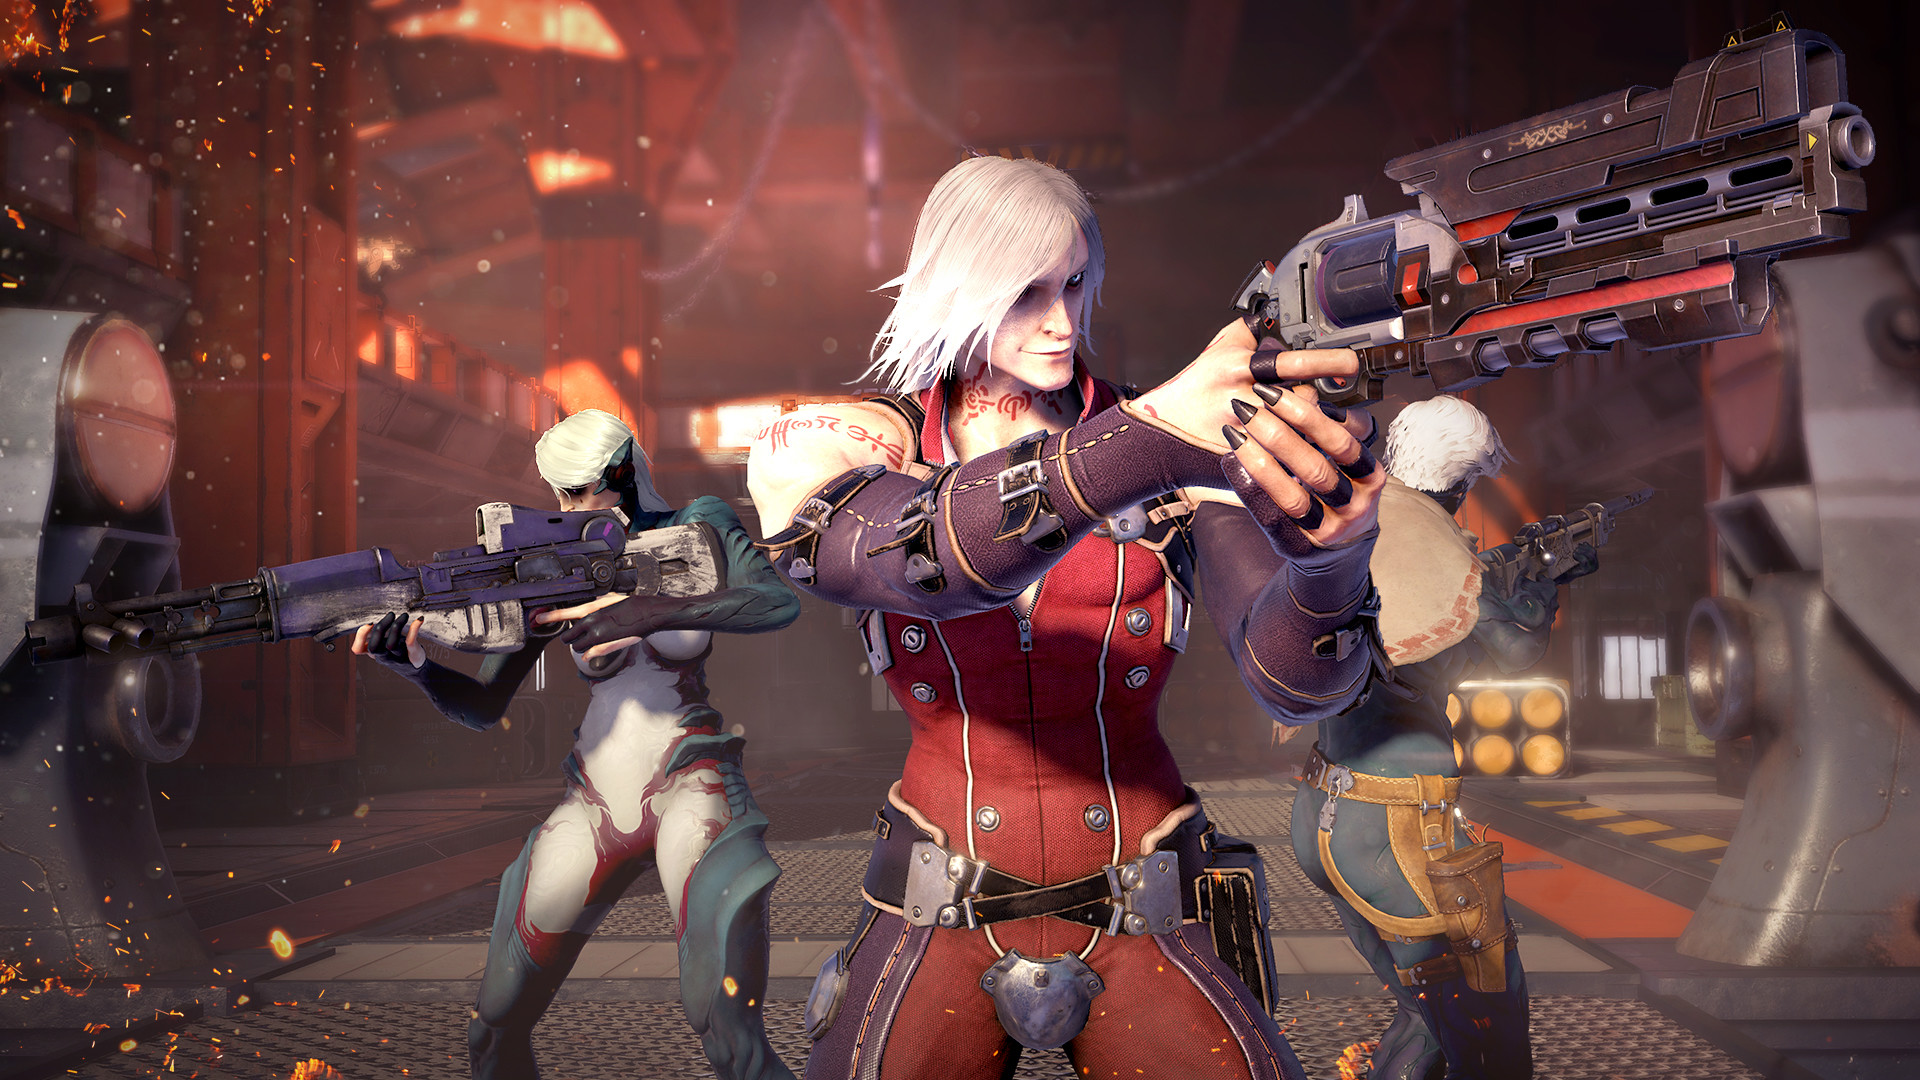 Spacelords Mercury Steam games as a service free to play great niche game